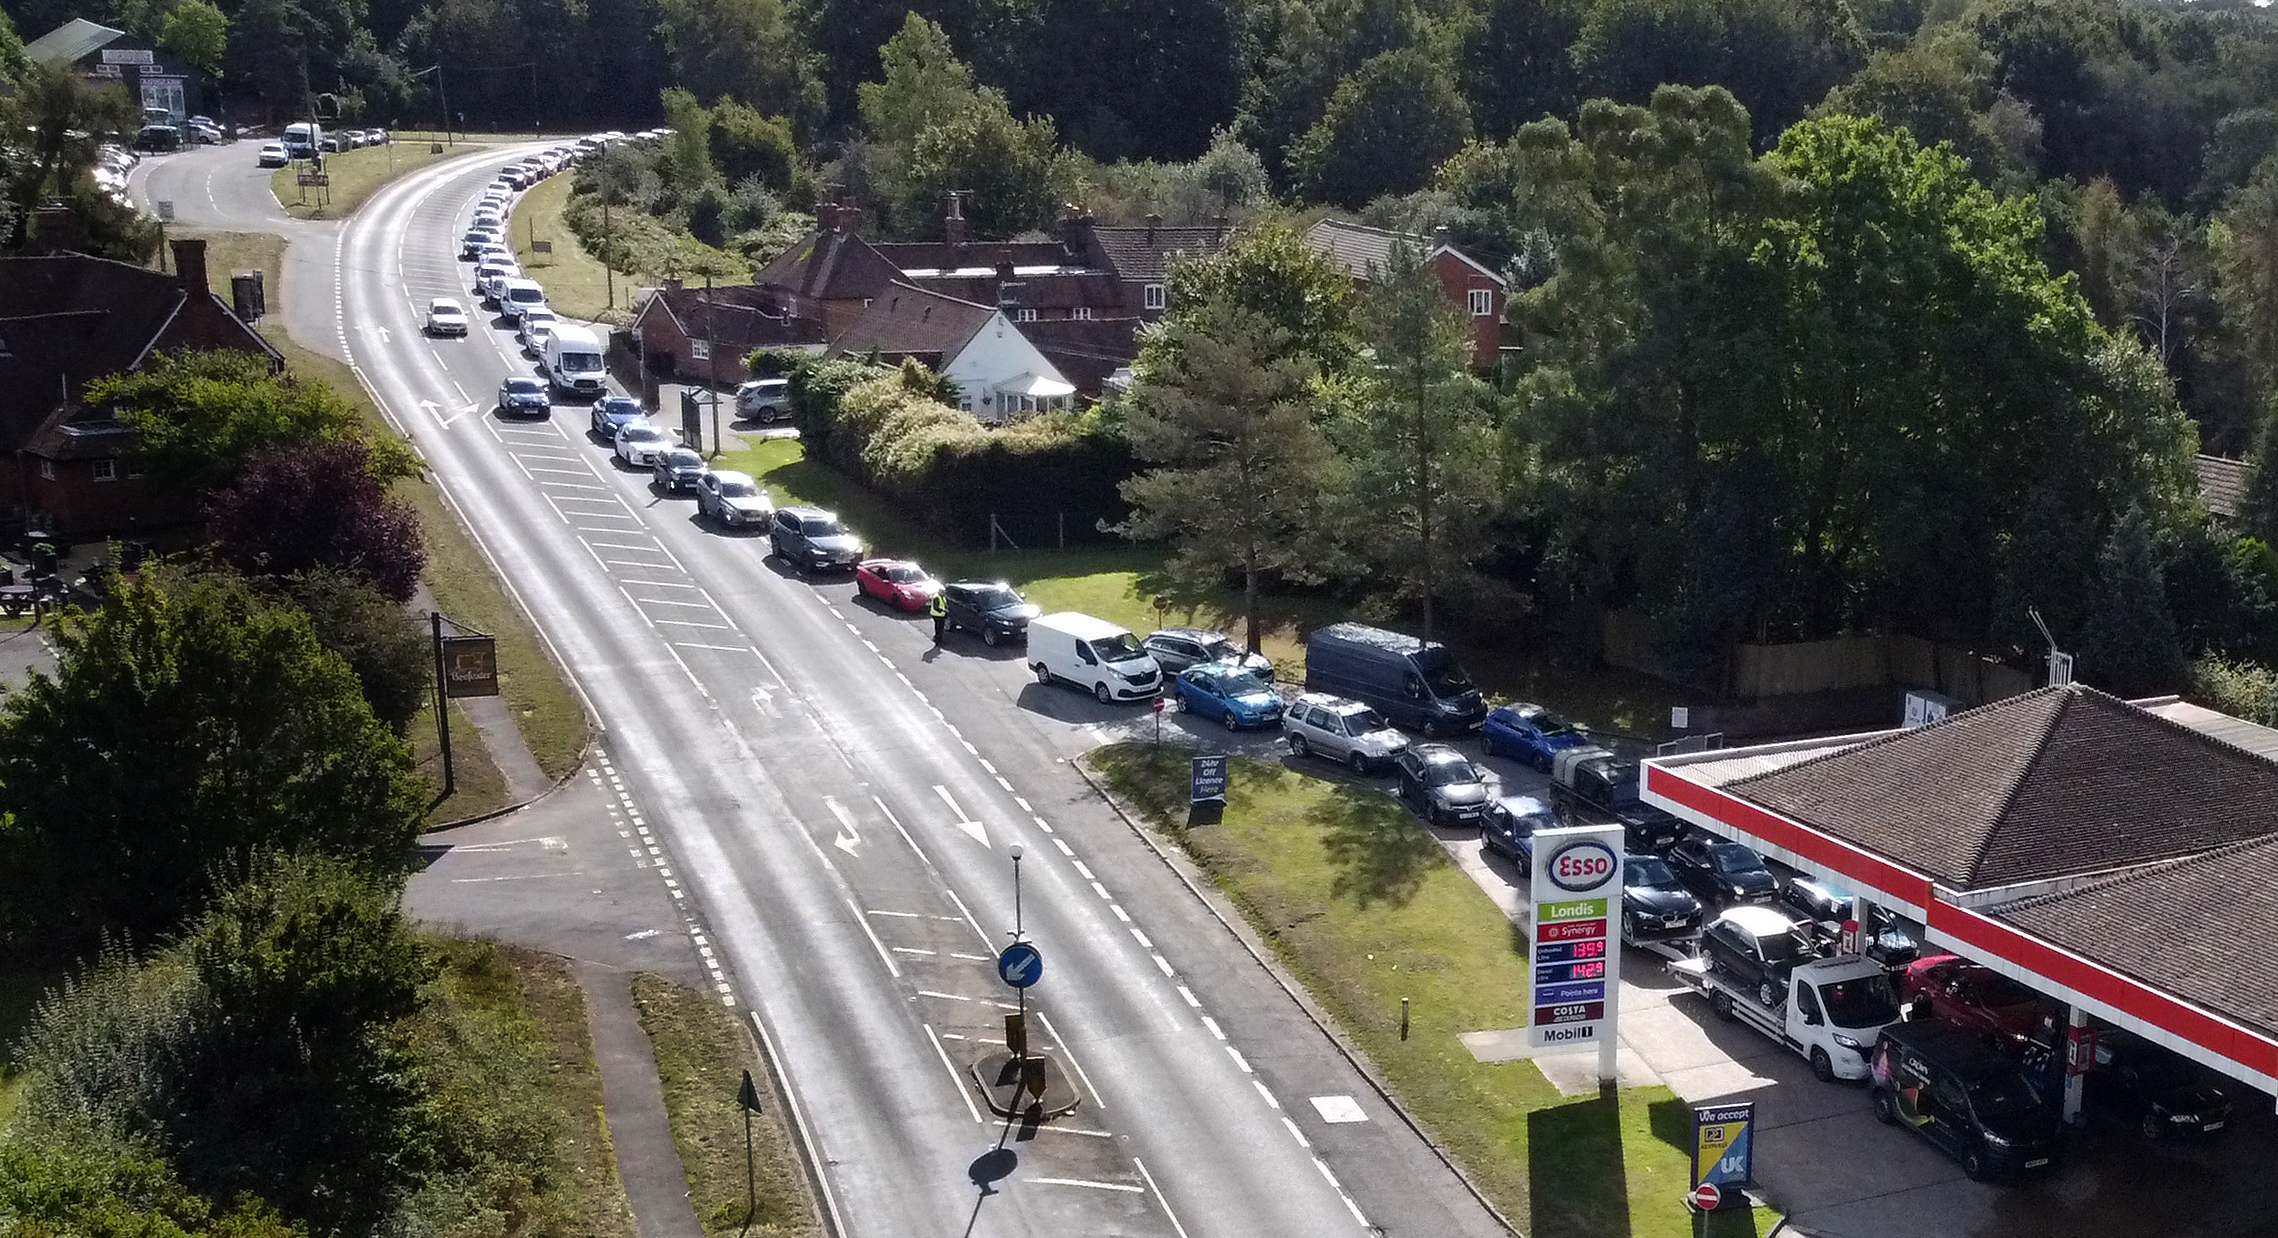 <p>Motorists queue for fuel at a petrol station in Ashford, Kent. Picture date: Wednesday September 29, 2021.</p>